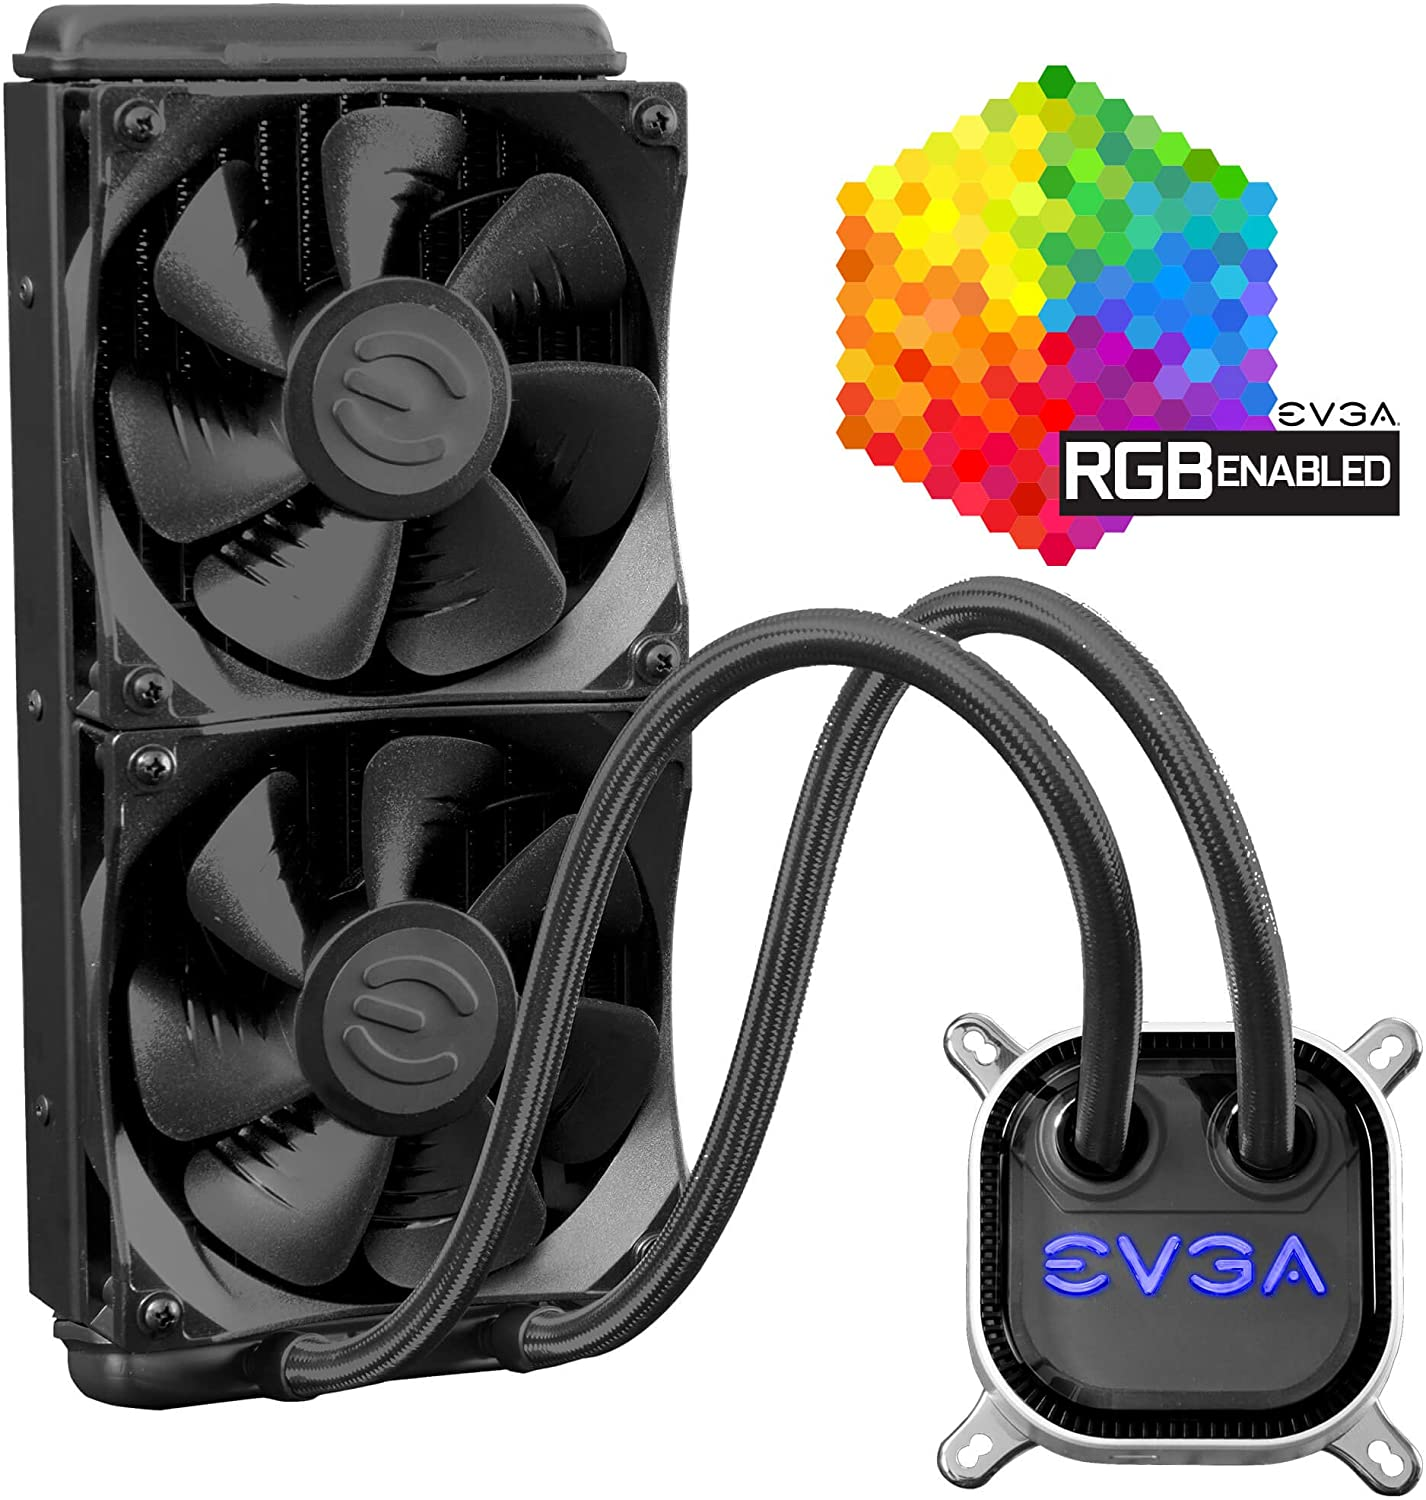 evga clc 280mm all in one rgb led cpu liquid cooler 2x fx13 140mm pwm fans intel amd 5 yr warranty 400 hy cl28 v1 - evga-clc-280mm-all-in-one-rgb-led-cpu-liquid-cooler-2x-fx13-140mm-pwm-fans-intel-amd-5-yr-warranty-400-hy-cl28-v1